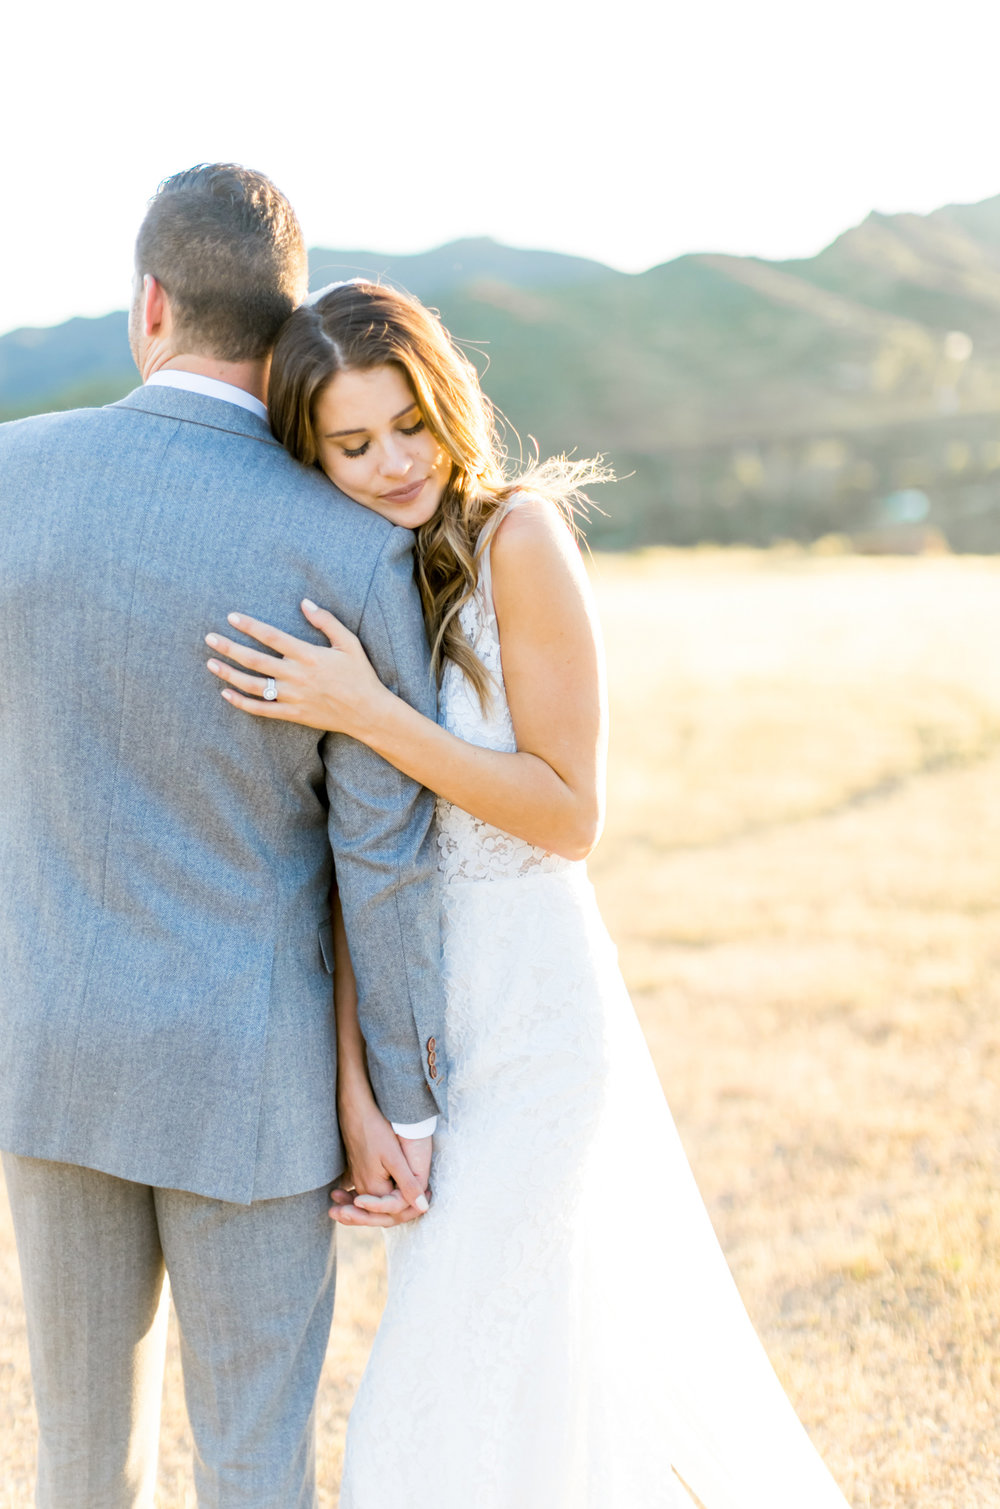 Triunfo-Creek-Malibu-Wedding-Natalie-Schutt-Photography-Couture-Events-Style-Me-Pretty_02.jpg